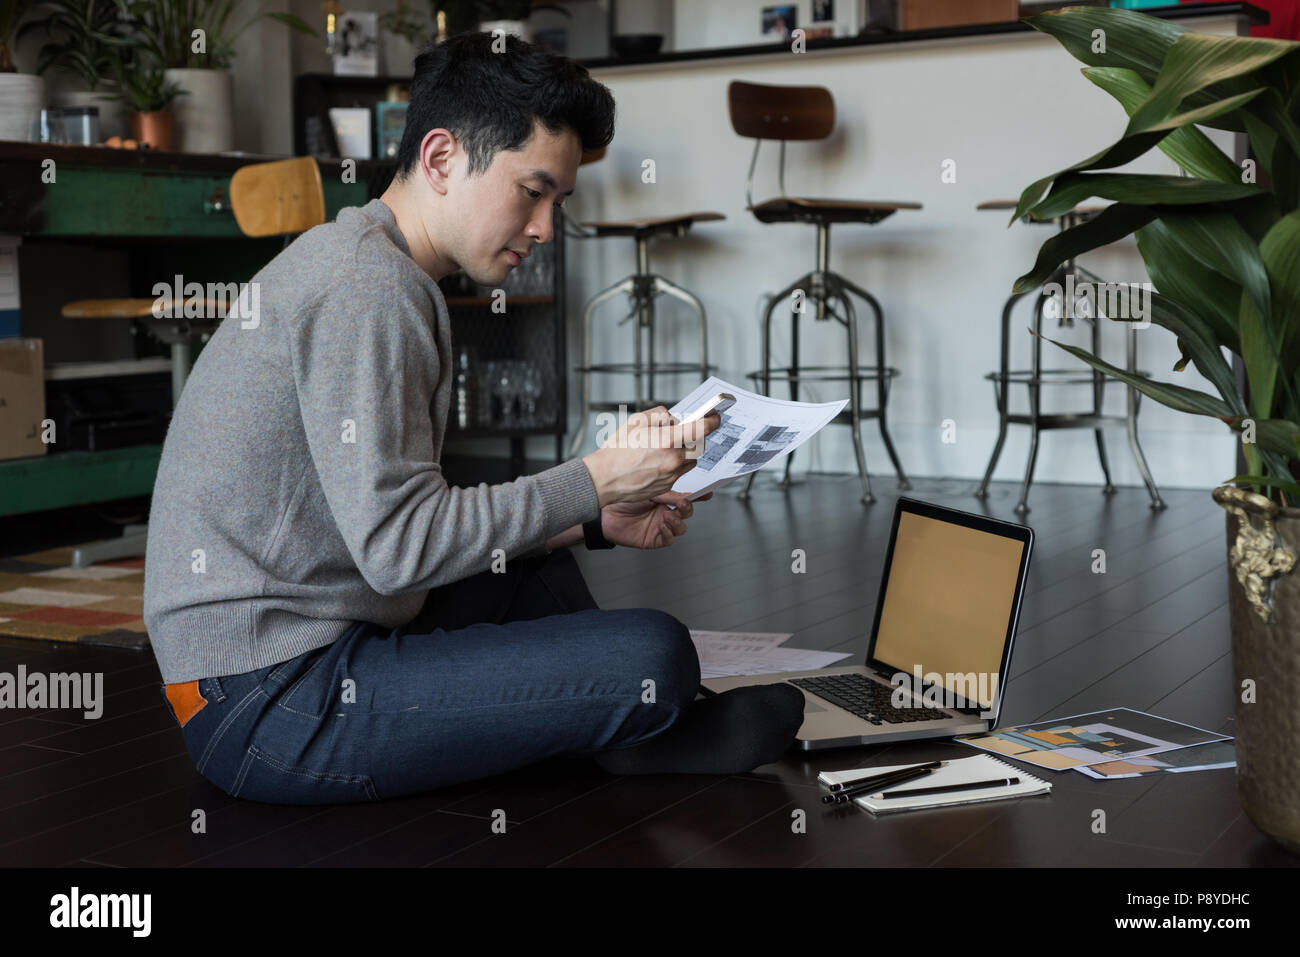 Man working on a project at home - Stock Image